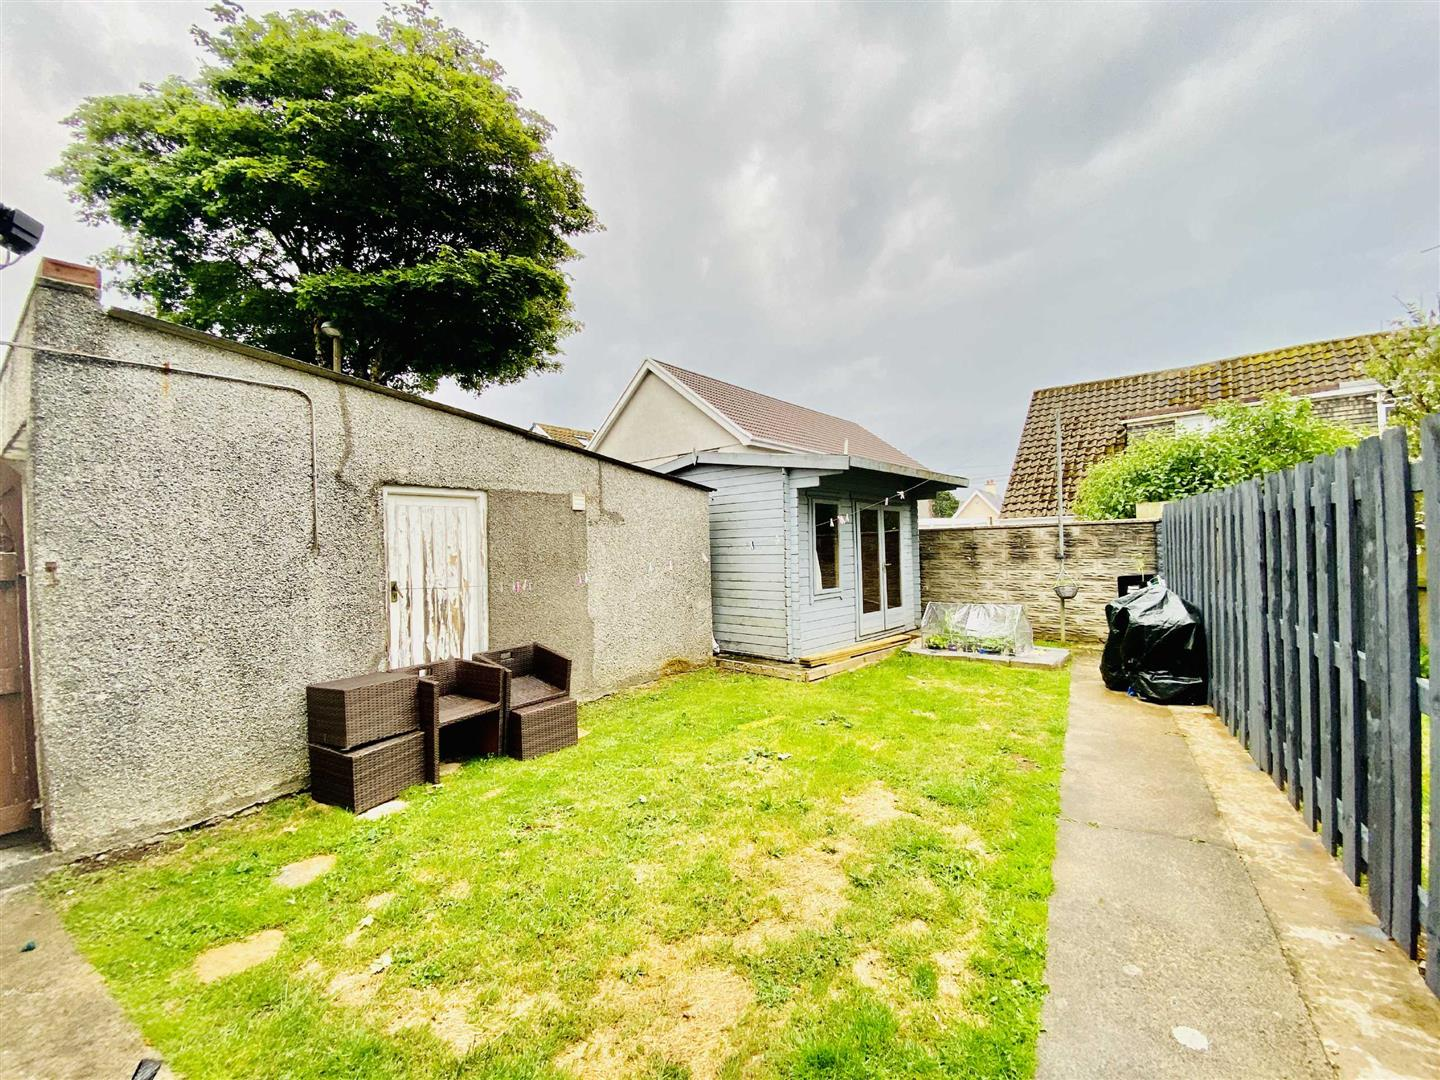 Beaufort Drive, Kittle, Swansea, SA3 3LD